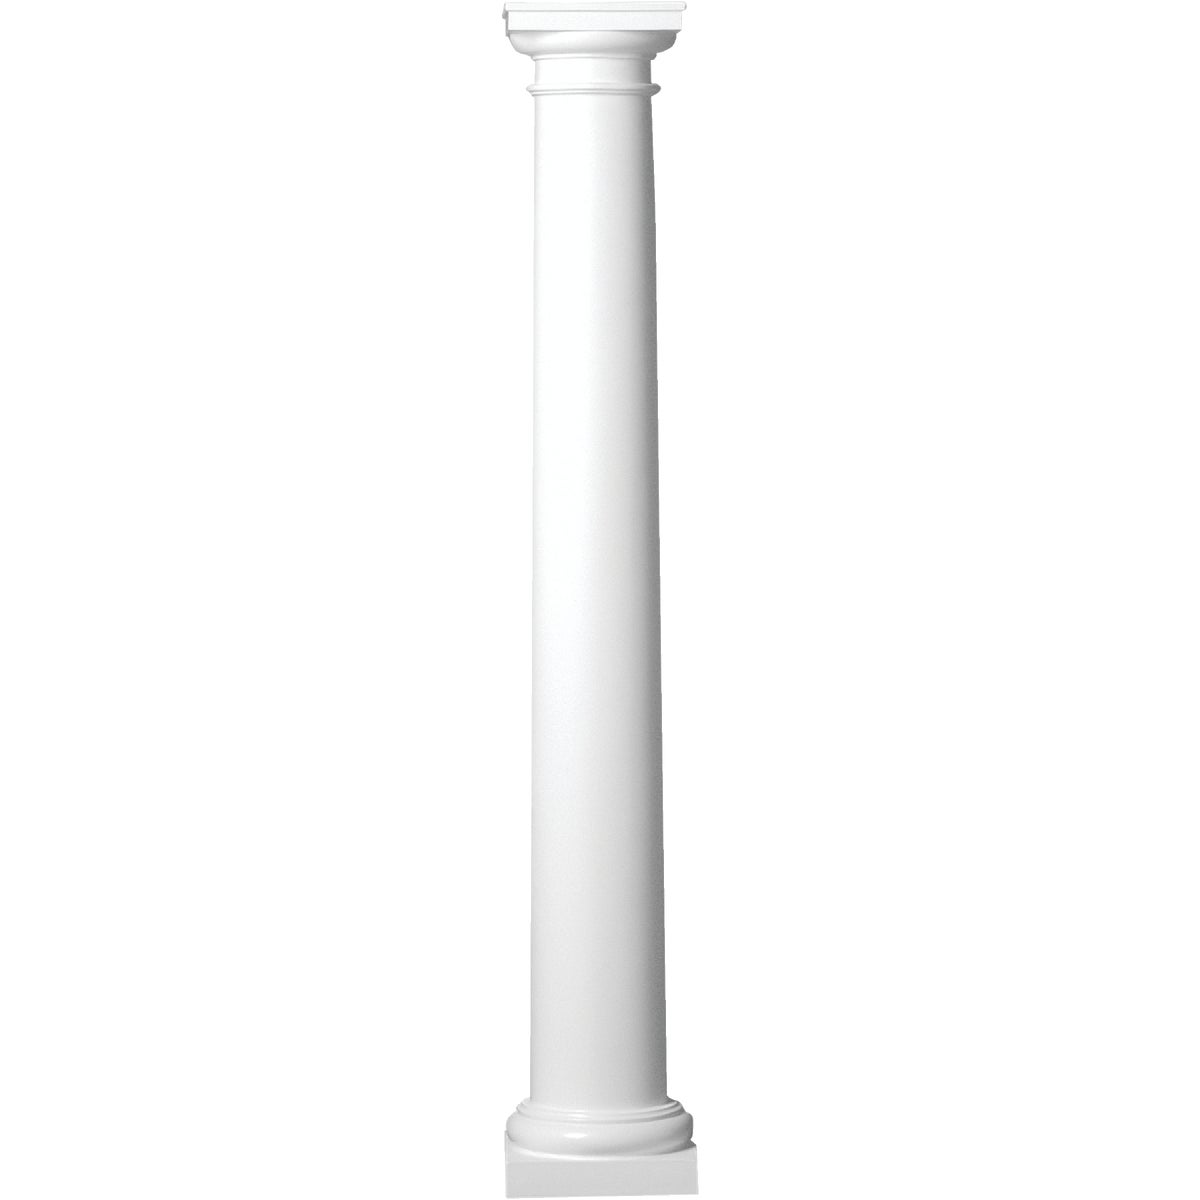 "8""X8' COLUMN RND F/G - 70010808PL by DIXIE PACIFIC"